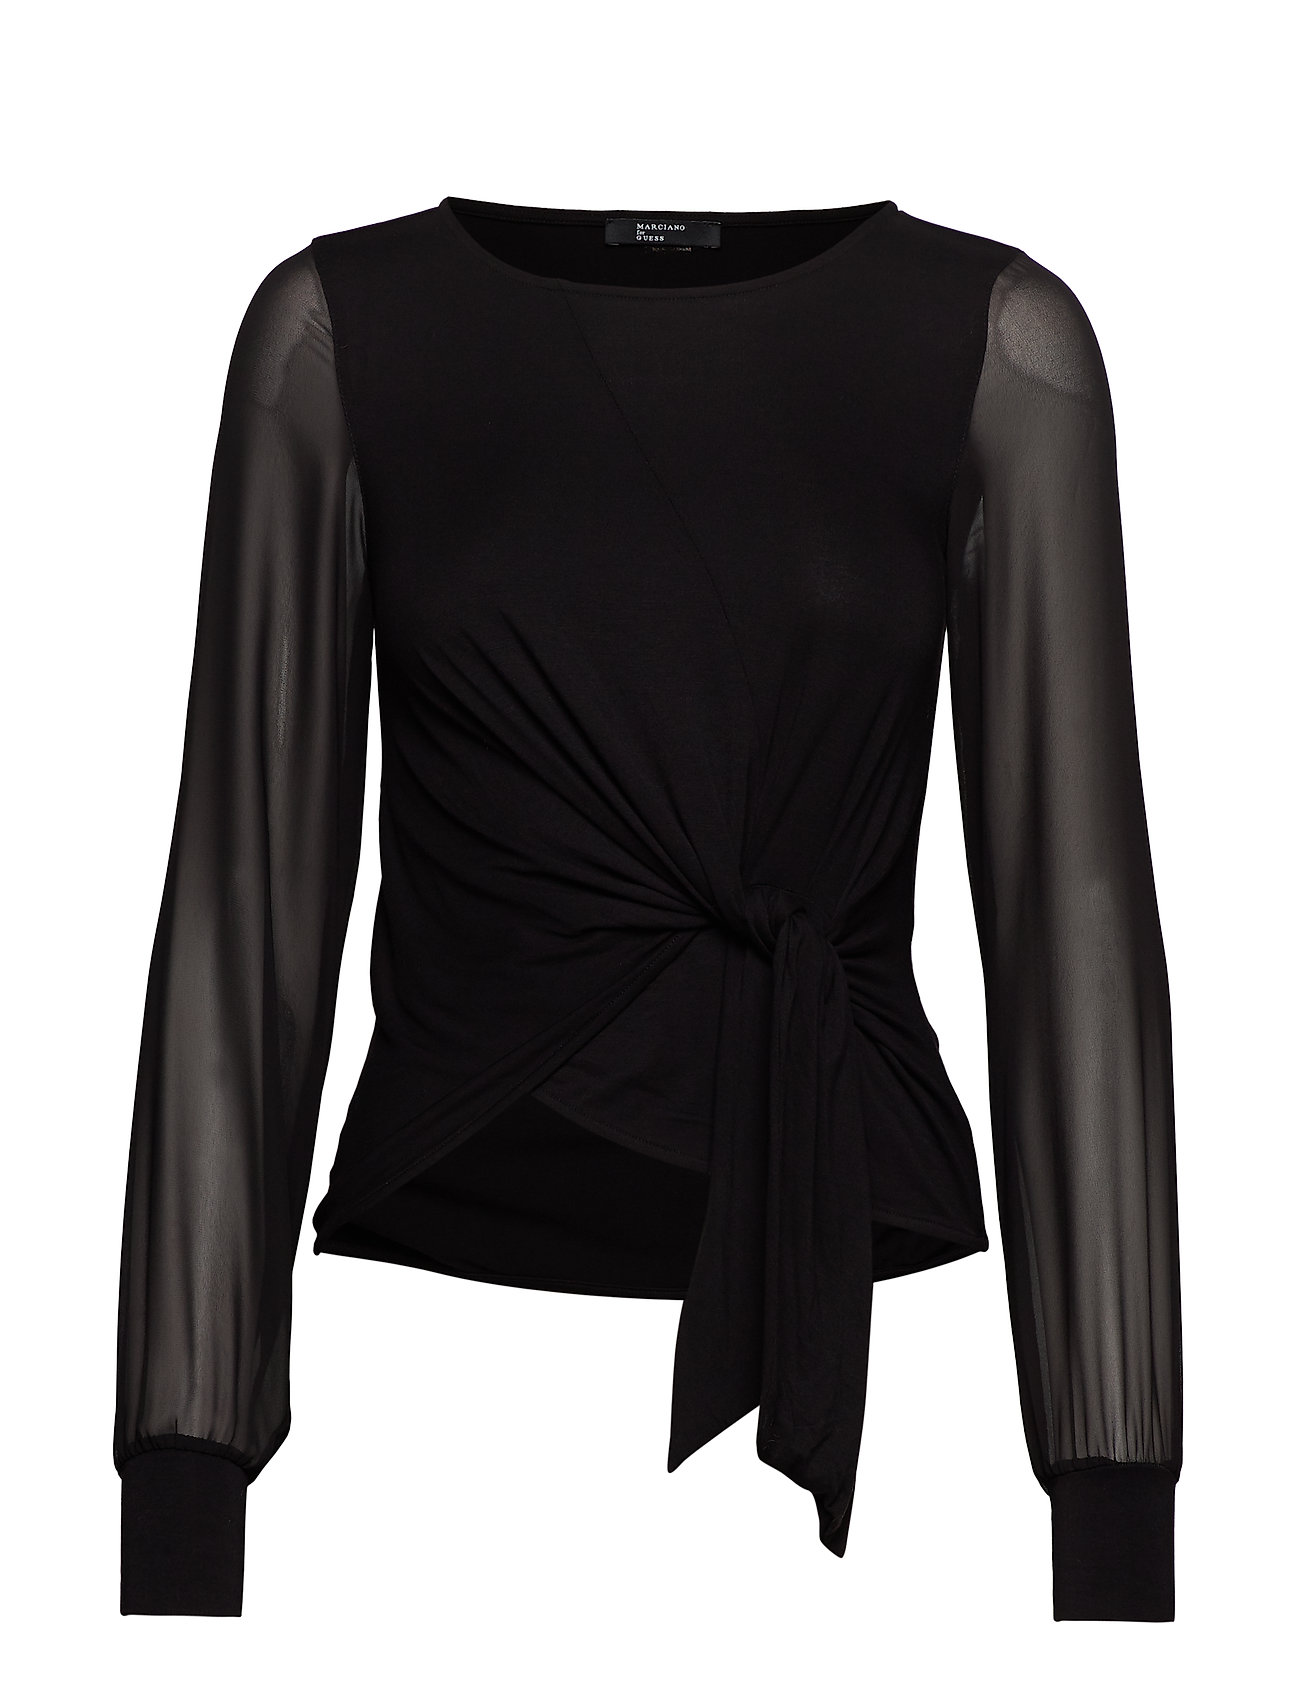 Marciano by GUESS MILLI TOP - JET BLACK A996